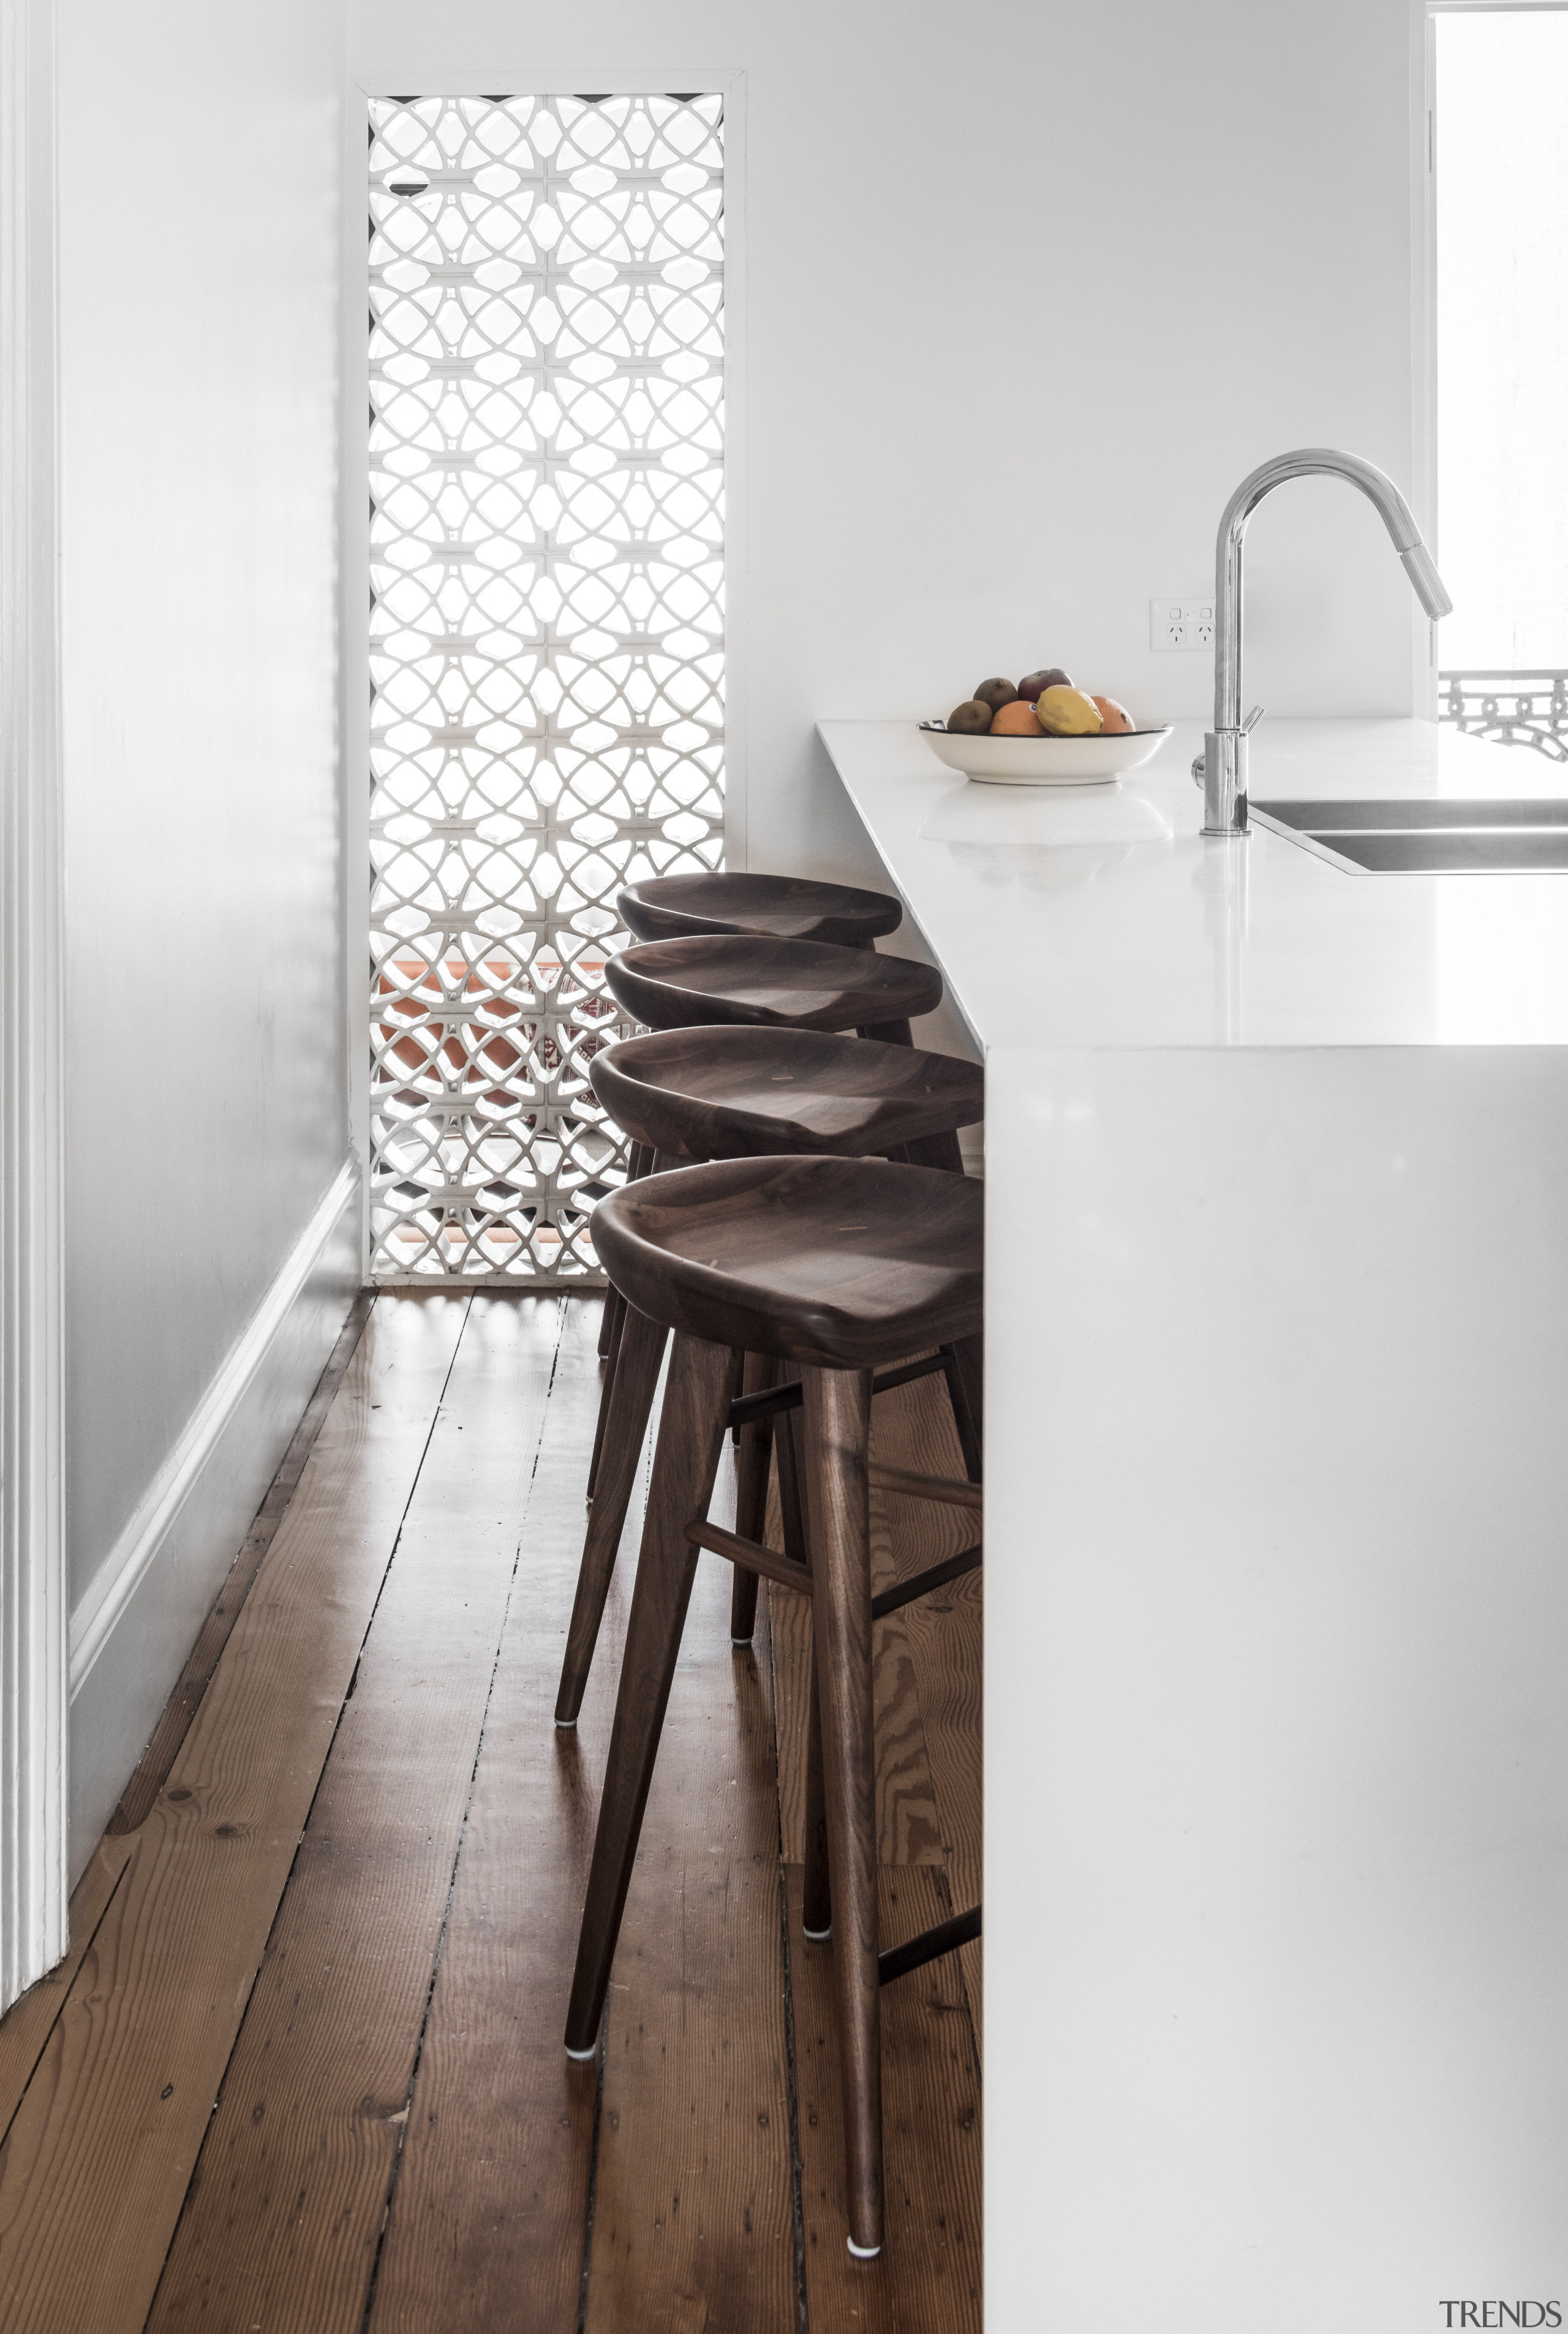 Touch of Morocco  a decorative tile wall chair, floor, flooring, furniture, interior design, product design, table, tap, tile, wall, white